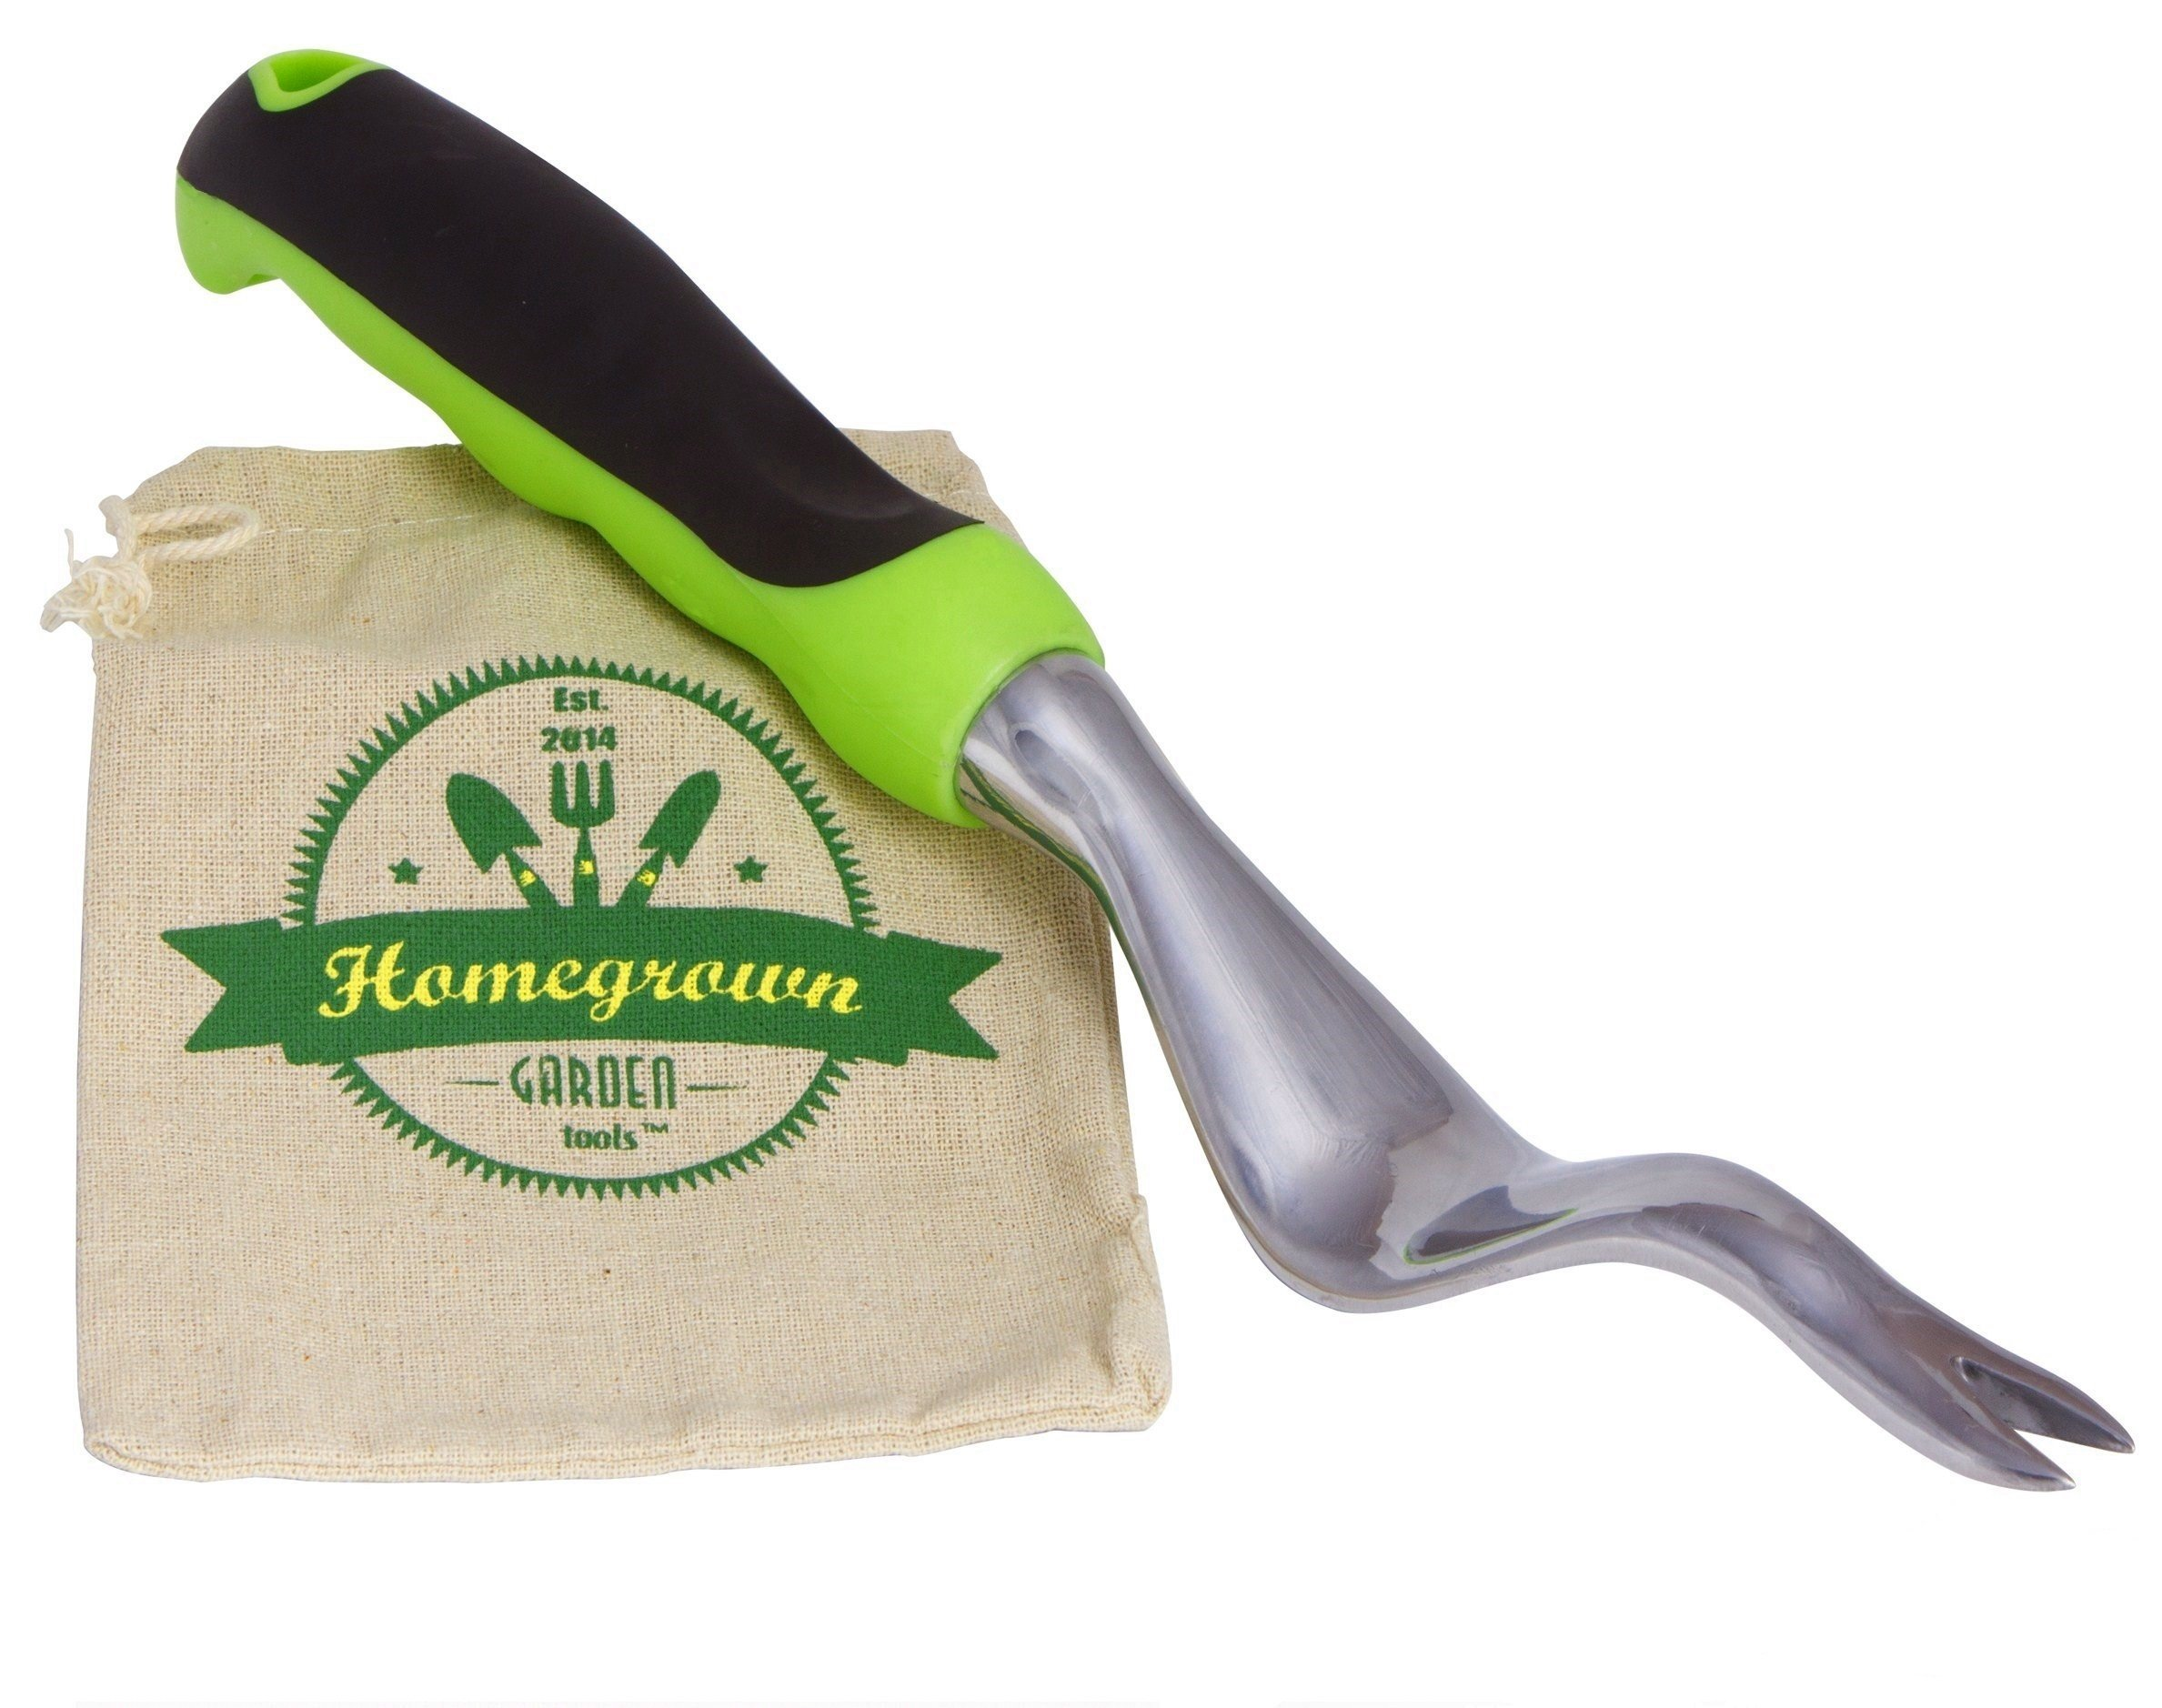 Hand Weeder & Manual Weed Puller with Large Ergonomic Handle; Best for Lawn and Garden Weeding, Includes Burlap Bag - Great Gardening Gift